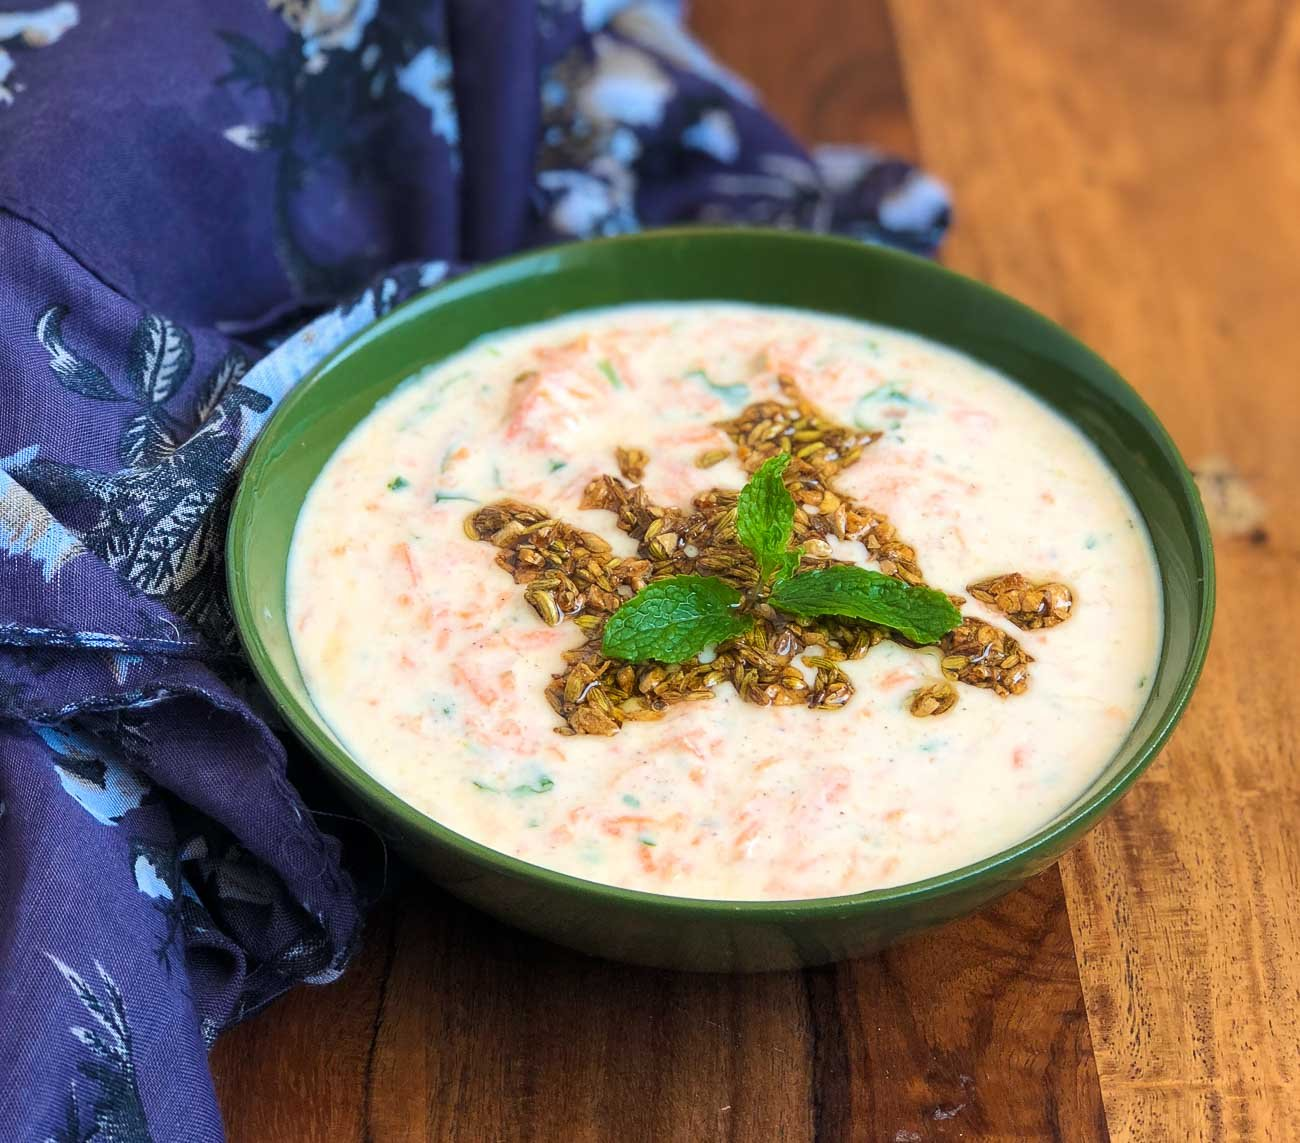 Carrot Tadka Raita Recipe- Crunchy Grated Carrot In Yogurt